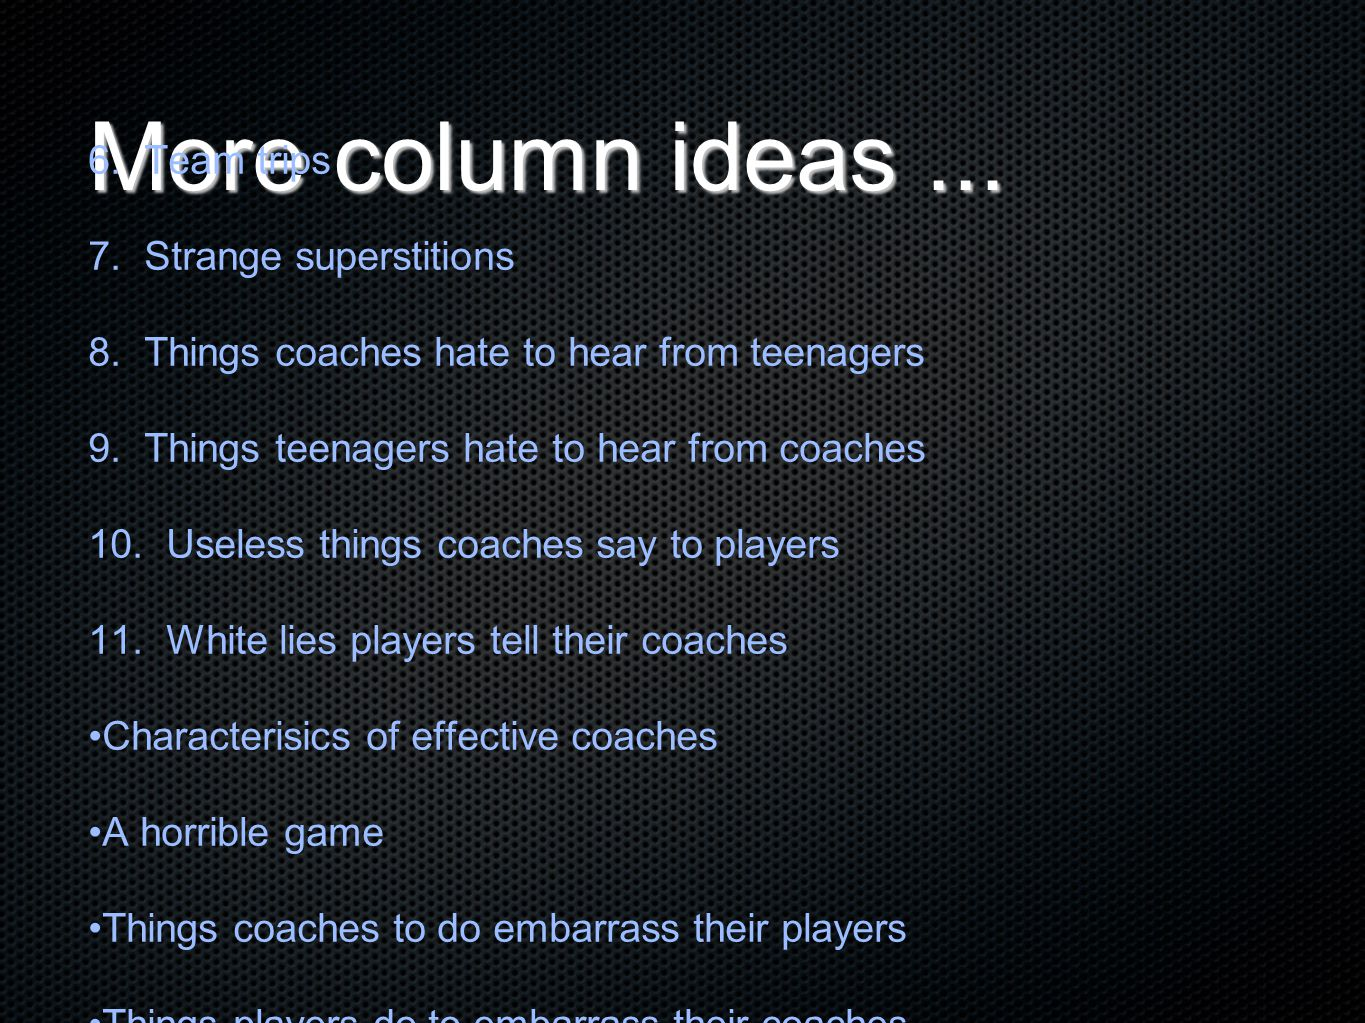 More column ideas... 6. Team trips 7. Strange superstitions 8. Things coaches hate to hear from teenagers 9. Things teenagers hate to hear from coache